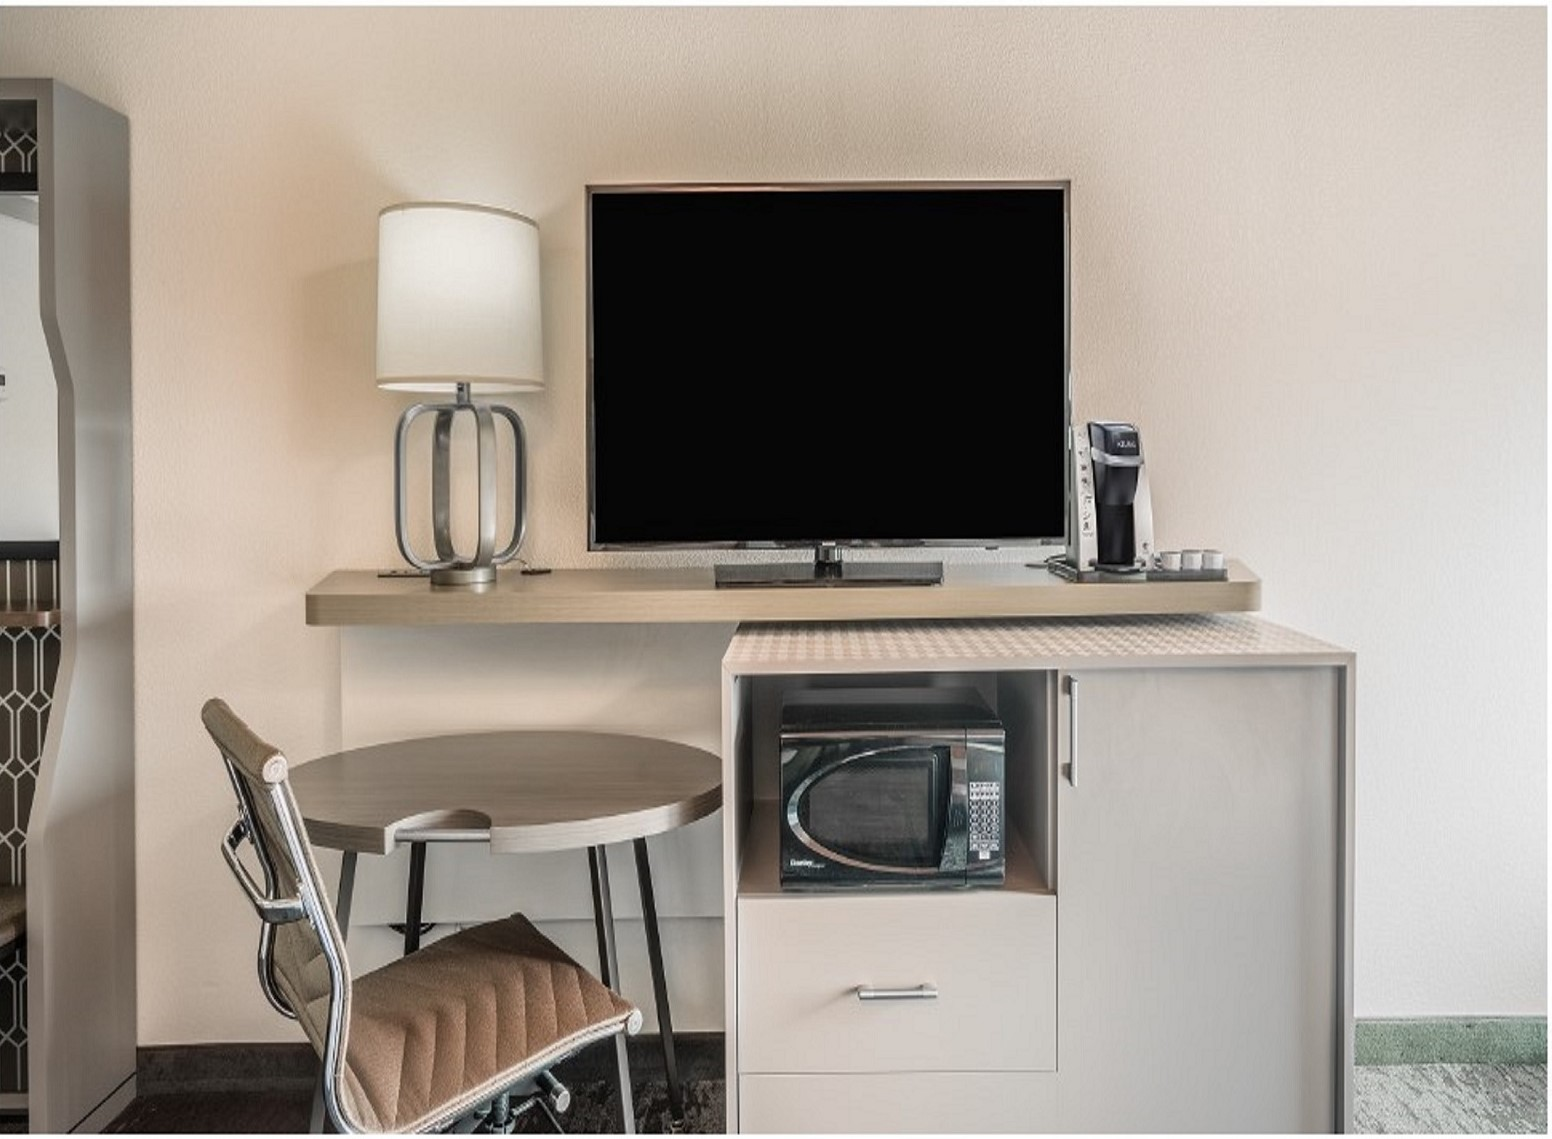 https://www.hotelsbyday.com/_data/default-hotel_image/4/21722/bookingnewworkstation.jpg